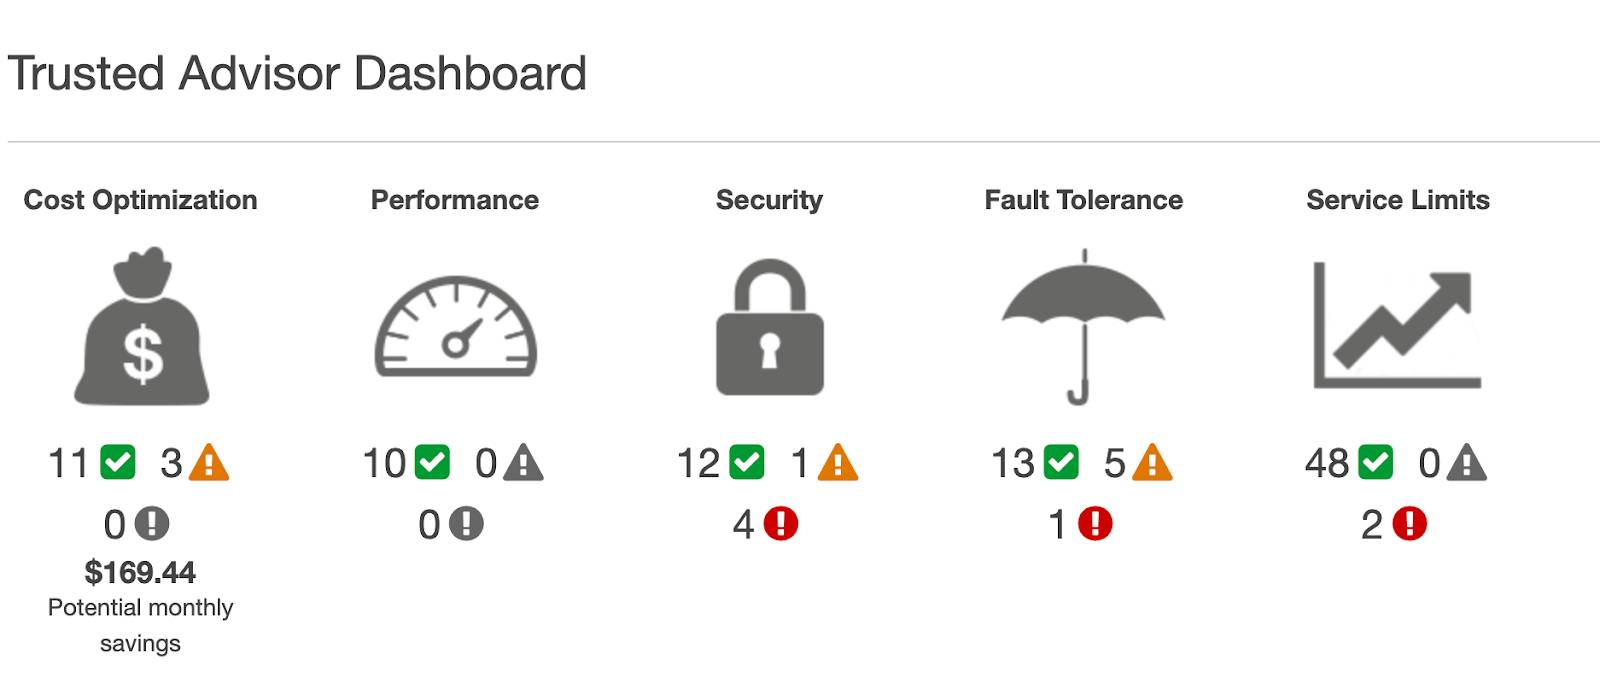 Trusted Advisor dashboard, showing Cost Optimization, Performance, Security, Fault Tolerance, and Service Limits with the number of checks below them